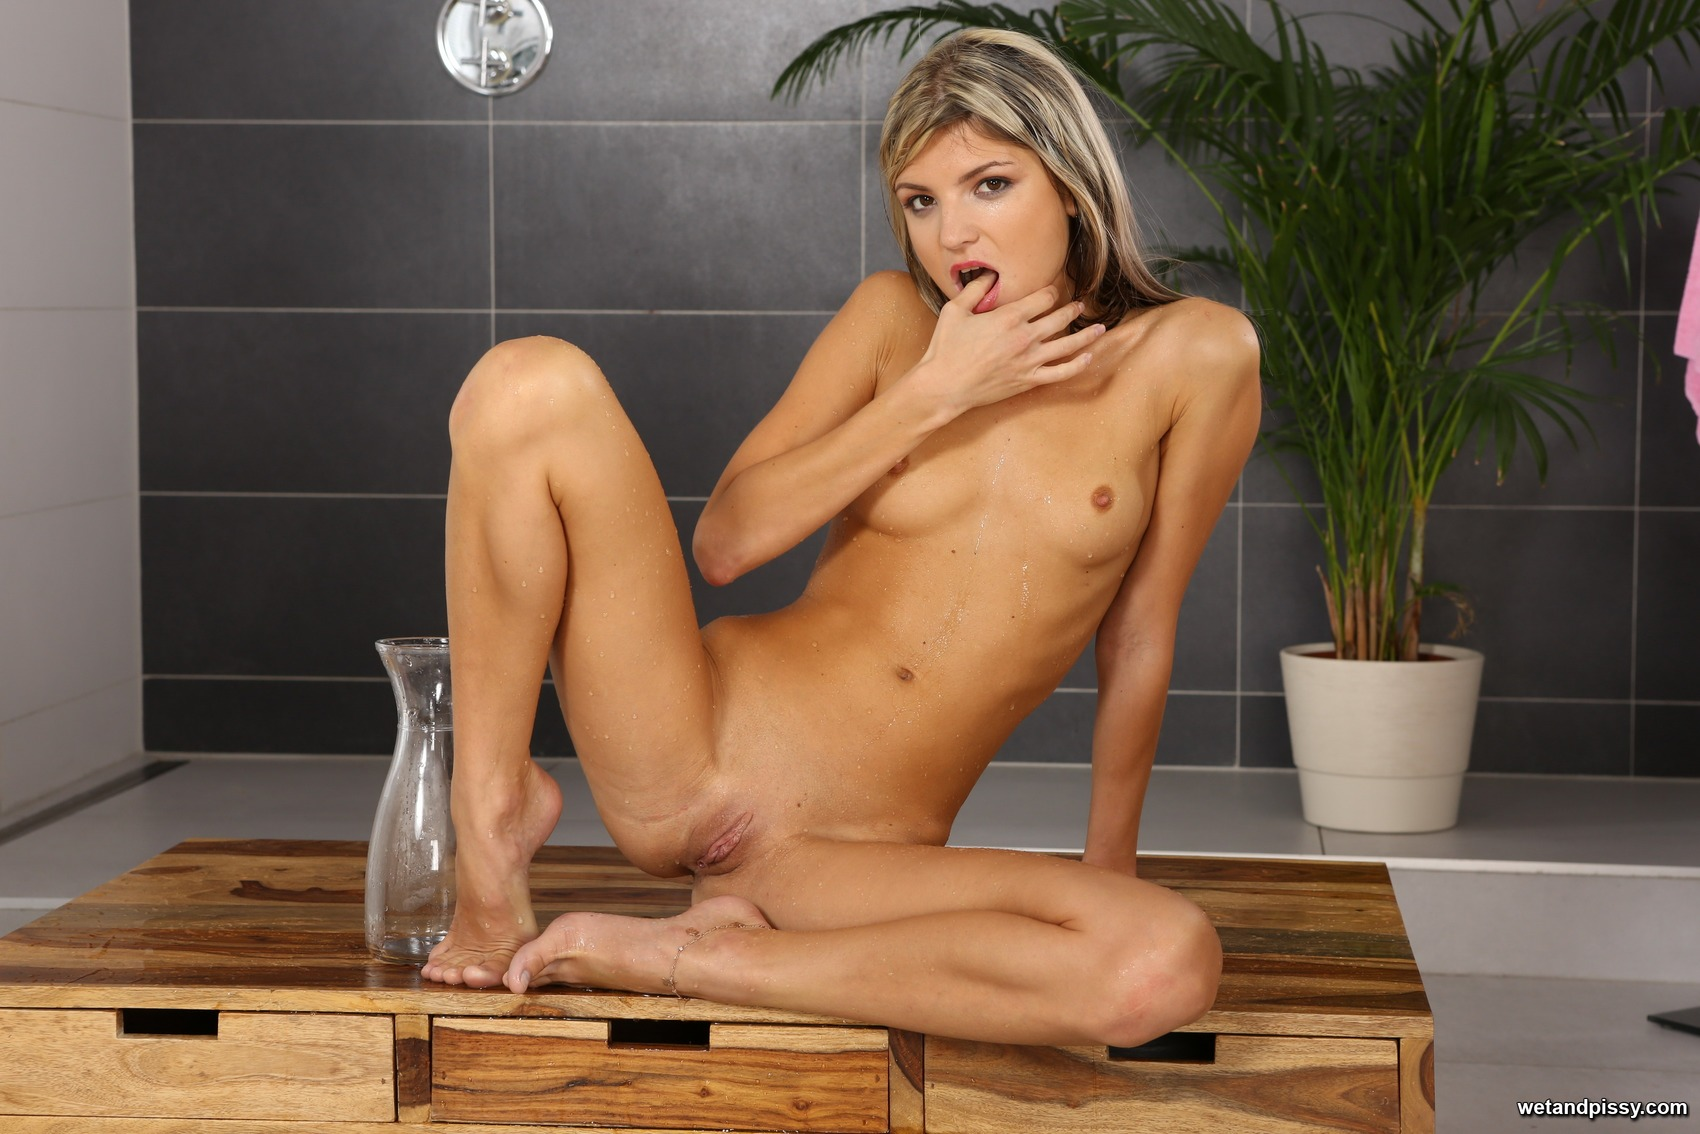 Wet and Pissy - Gina Gerson 100592